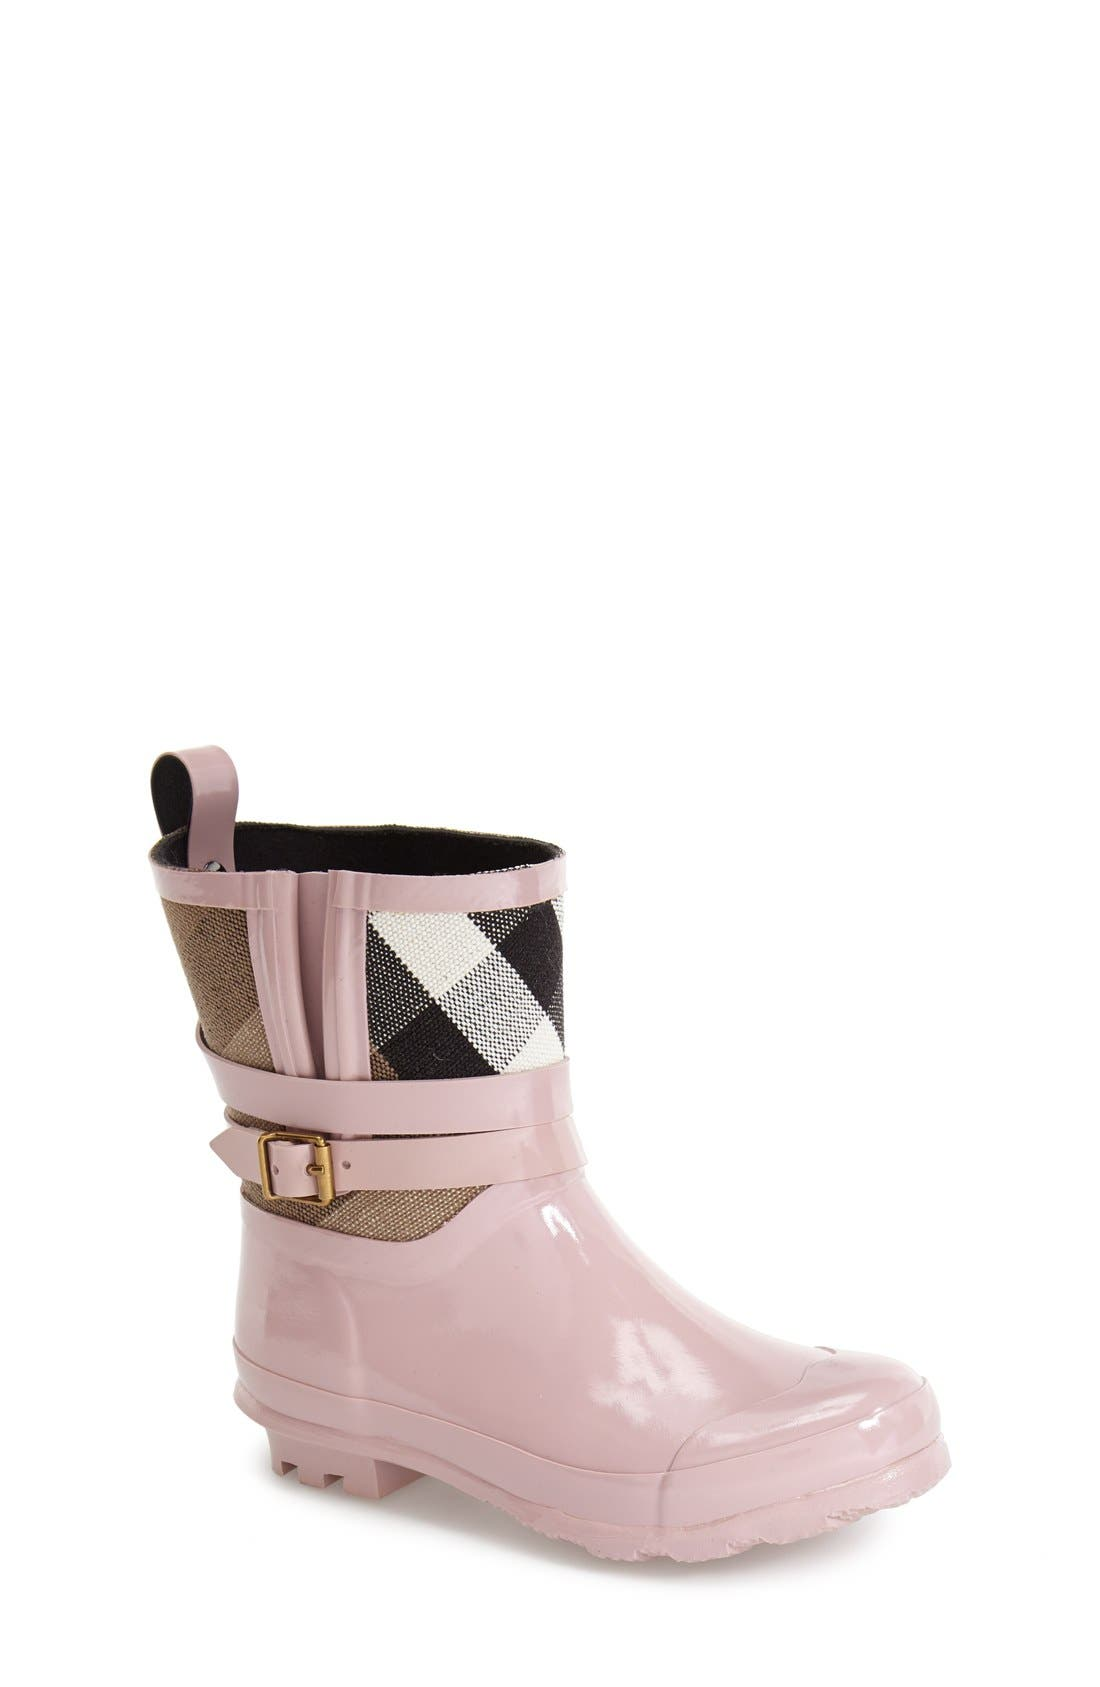 Alternate Image 1 Selected - Burberry 'Holloway' Rain Boot (Toddler & Little Kid)